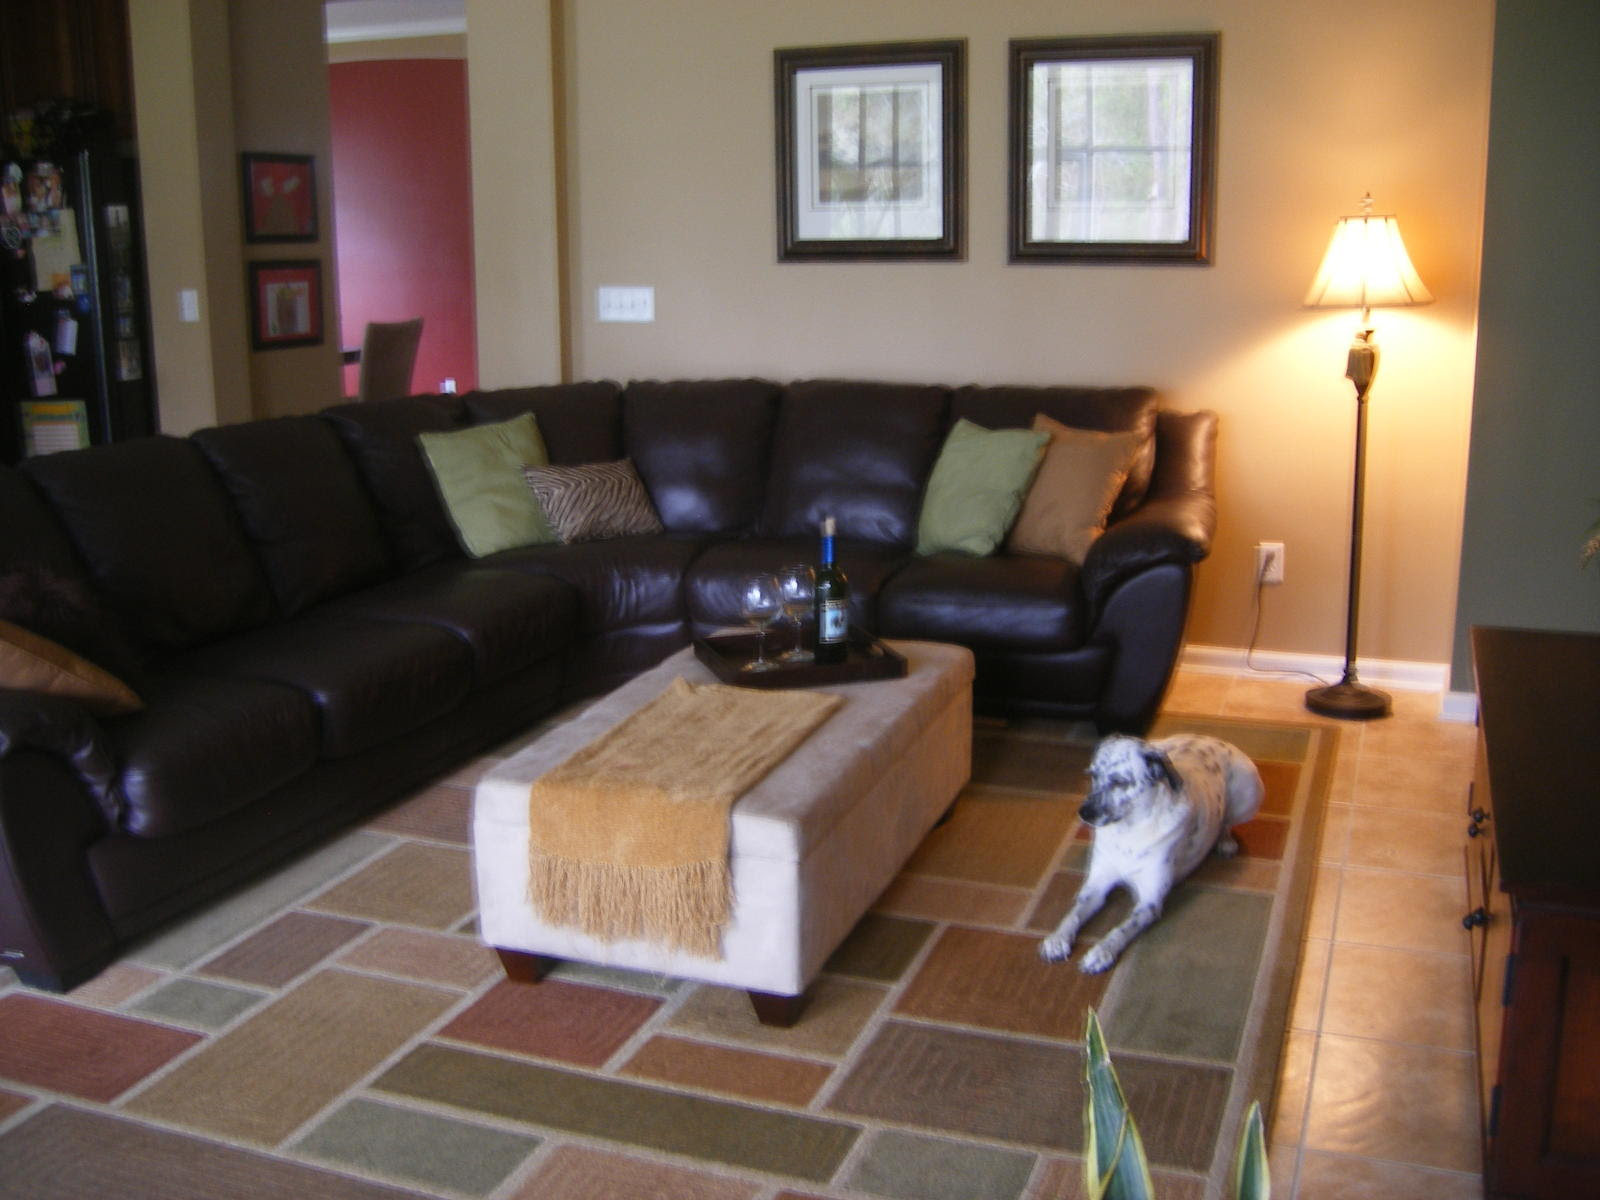 Another picture of living room decorating ideas burgundy sofa